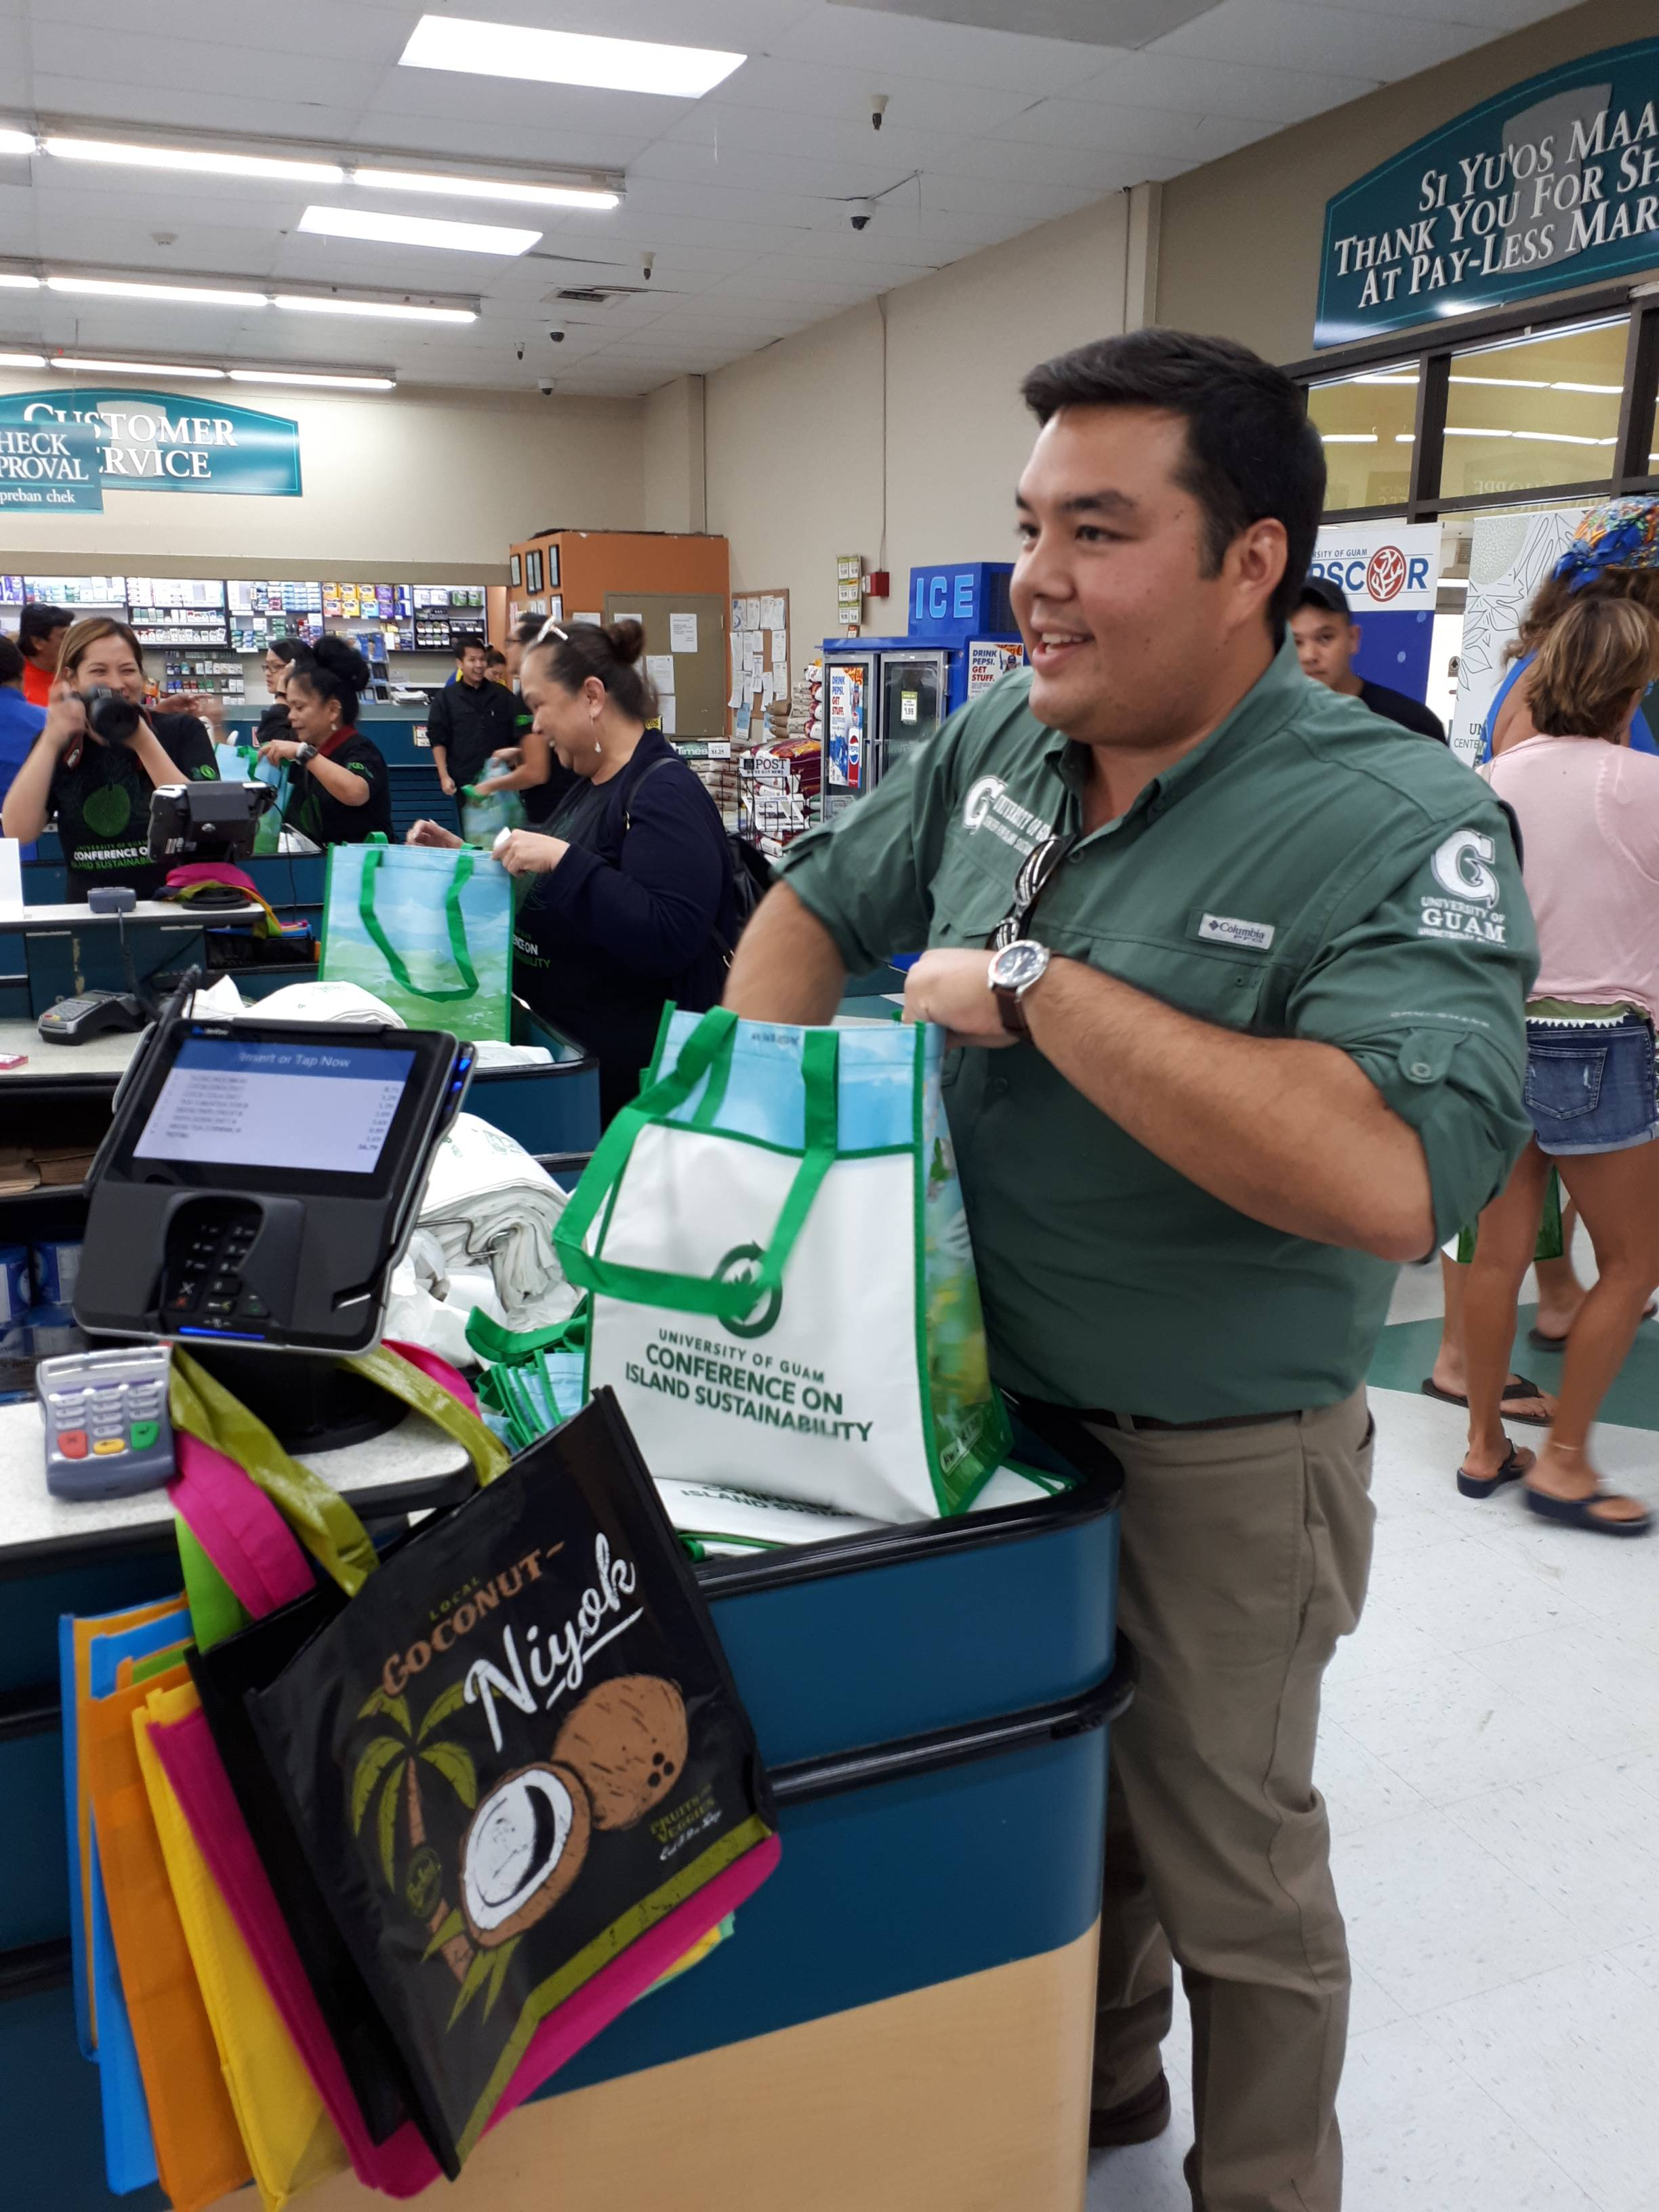 University of Guam Center for Island Sustainability (CIS) Executive Director Austin Shelton bags groceries in a free reusable bag for a customer on June 7 at the Agana Shopping Center Pay-Less Supermarket. CIS provided 500 free reusable bags in total to customers in the two days following the enactment of Public Law 34-110 banning plastic bags.